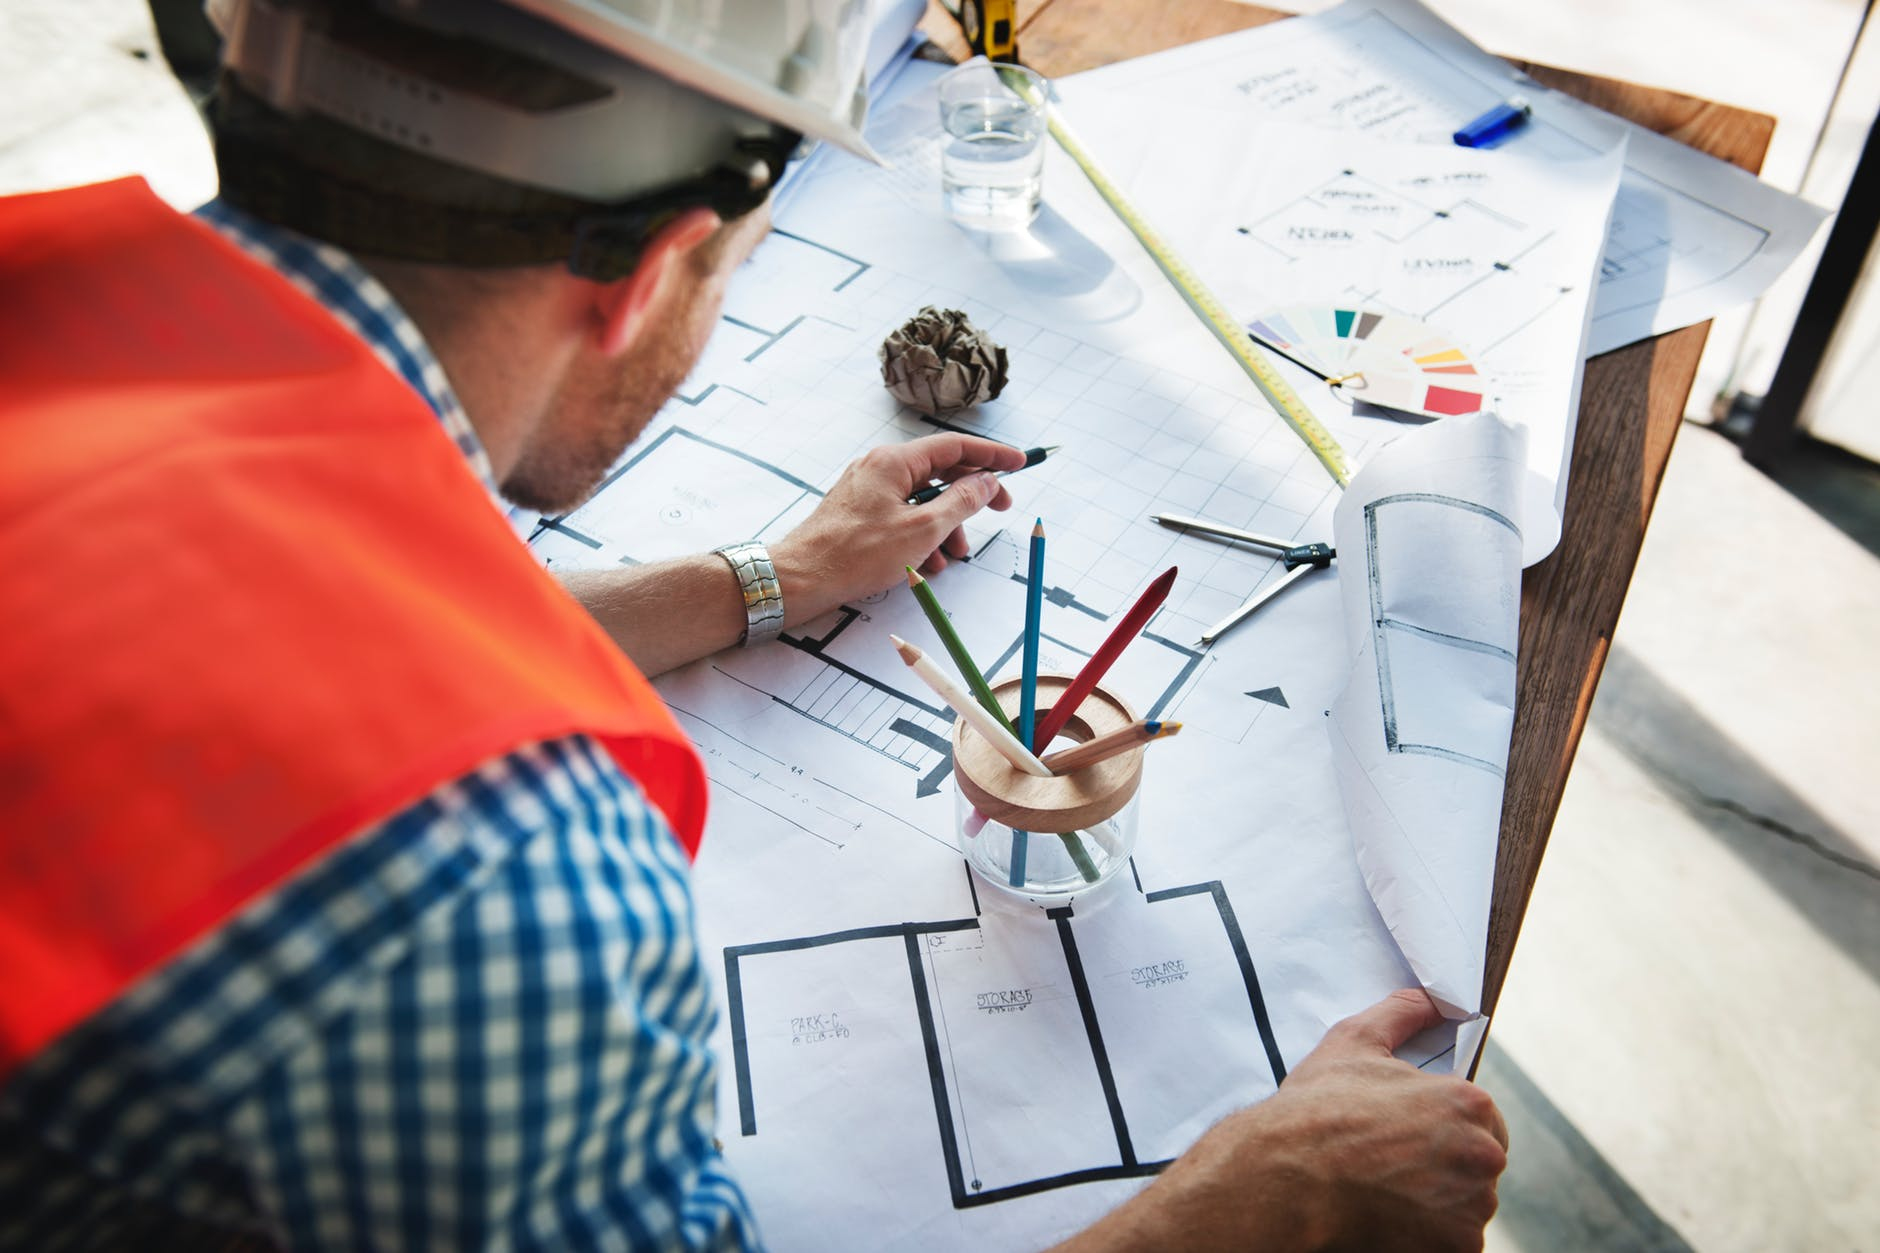 Want To Streamline Your Construction Project? Be a Better Leader